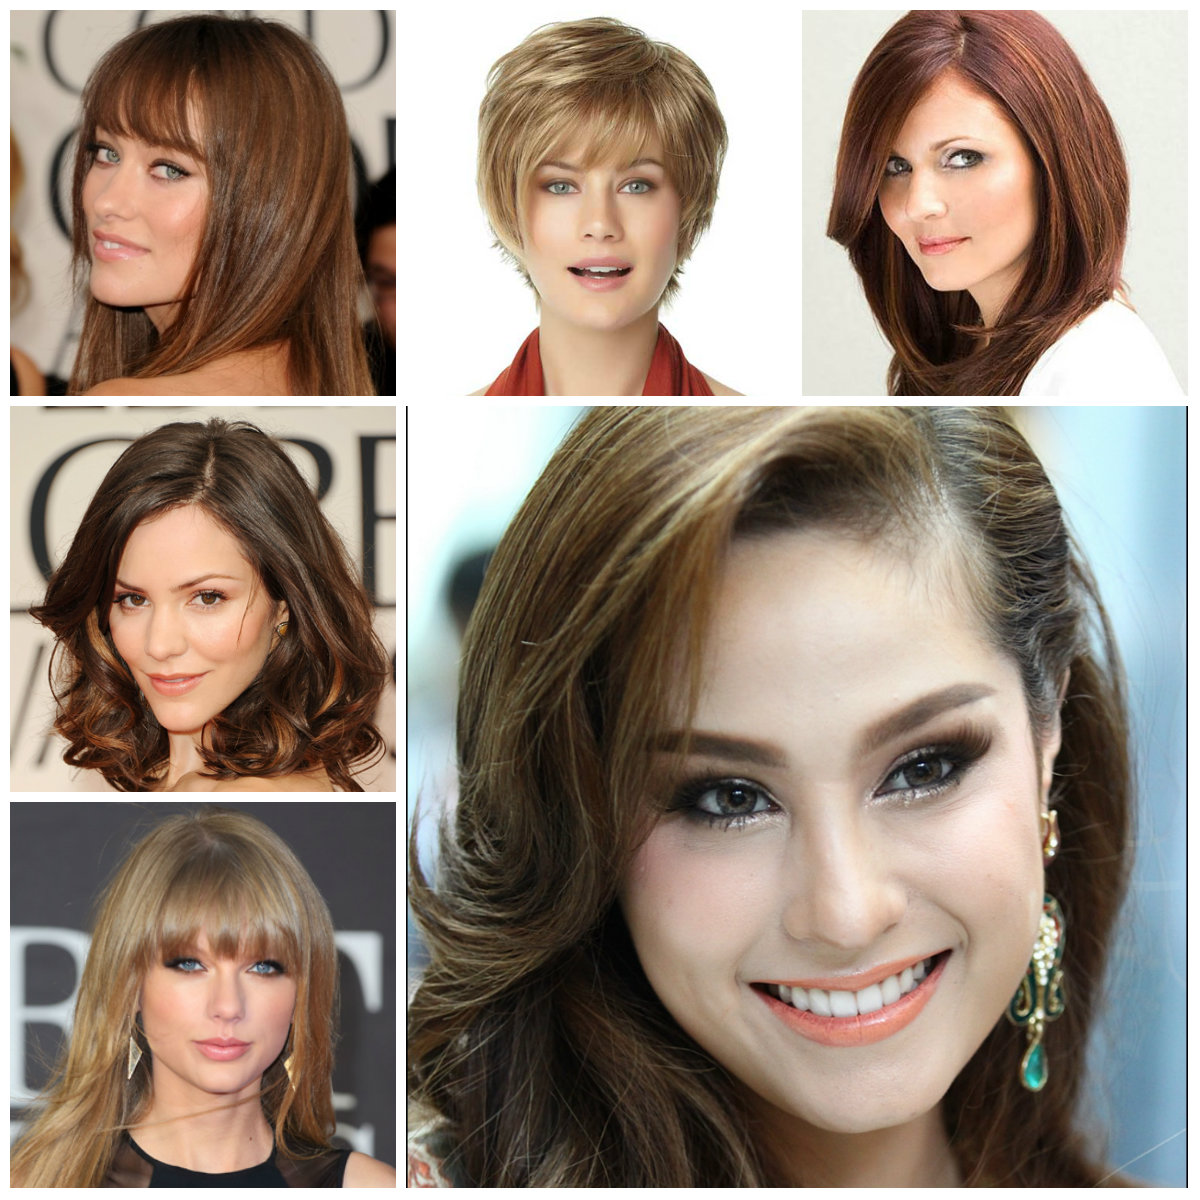 How to choose a hairstyle for hair by type of face